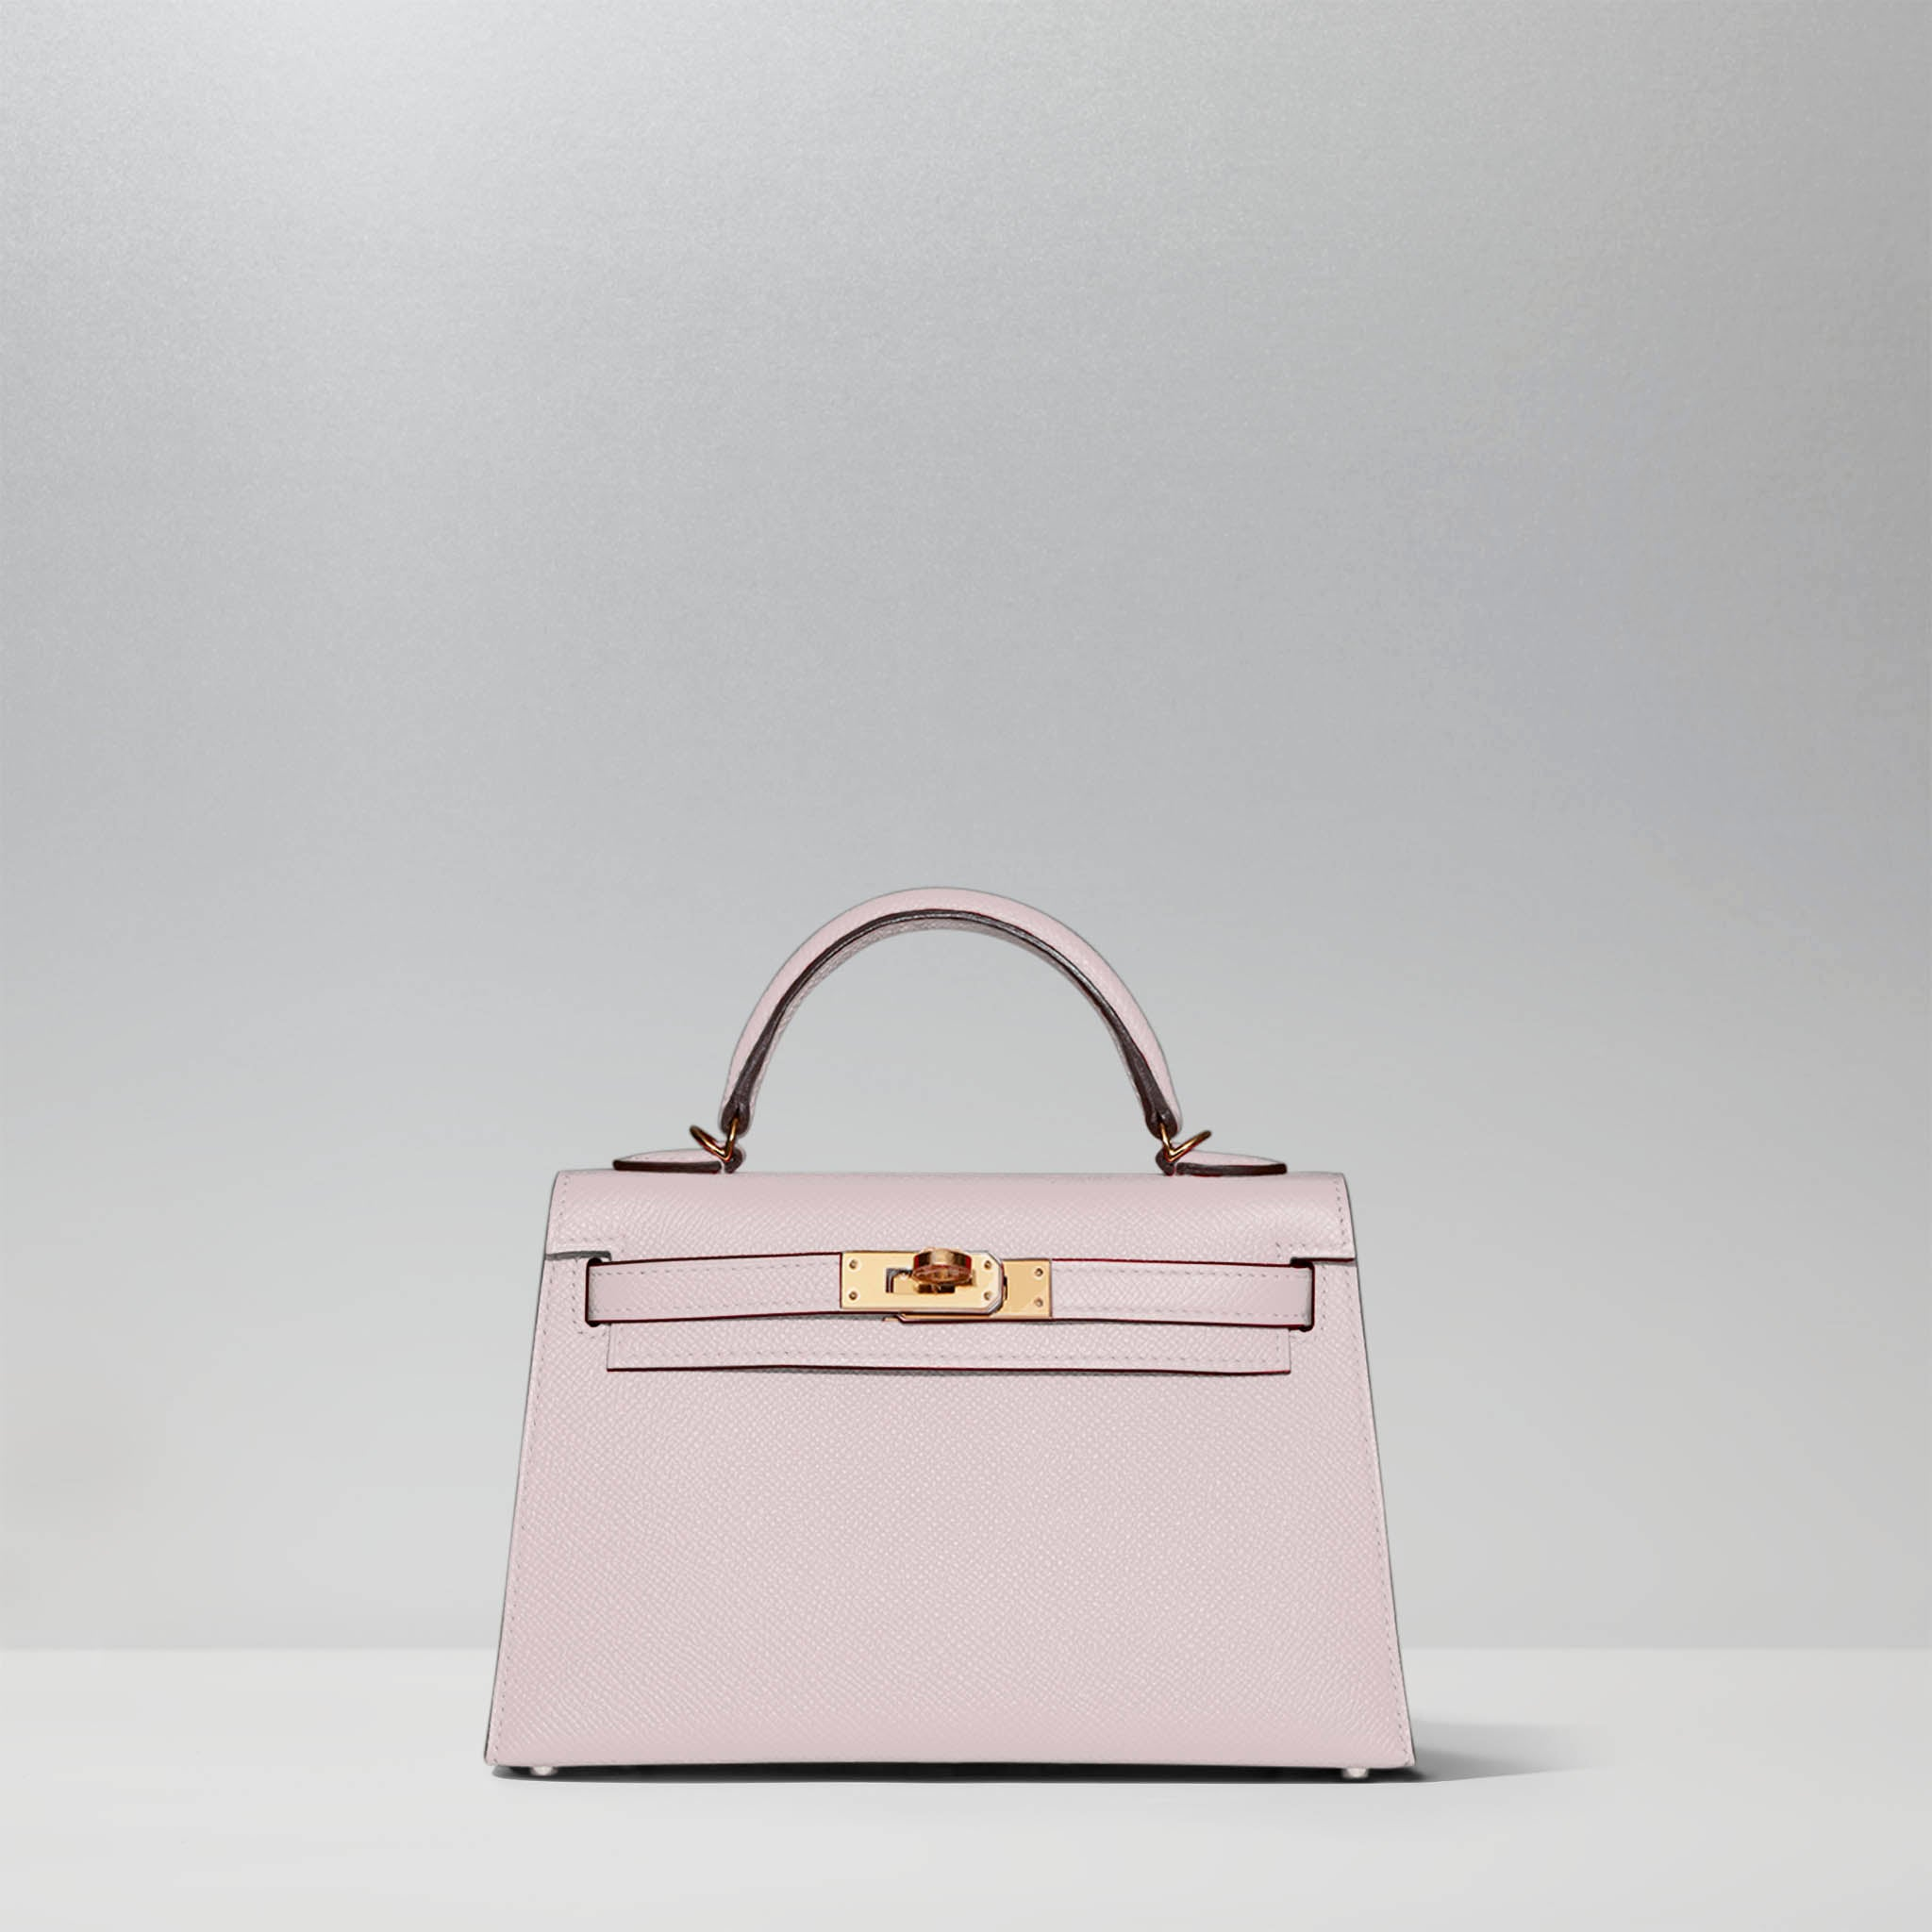 d0d97755bfed Mini Kelly 20cm in Craie by Hermès – Material Good